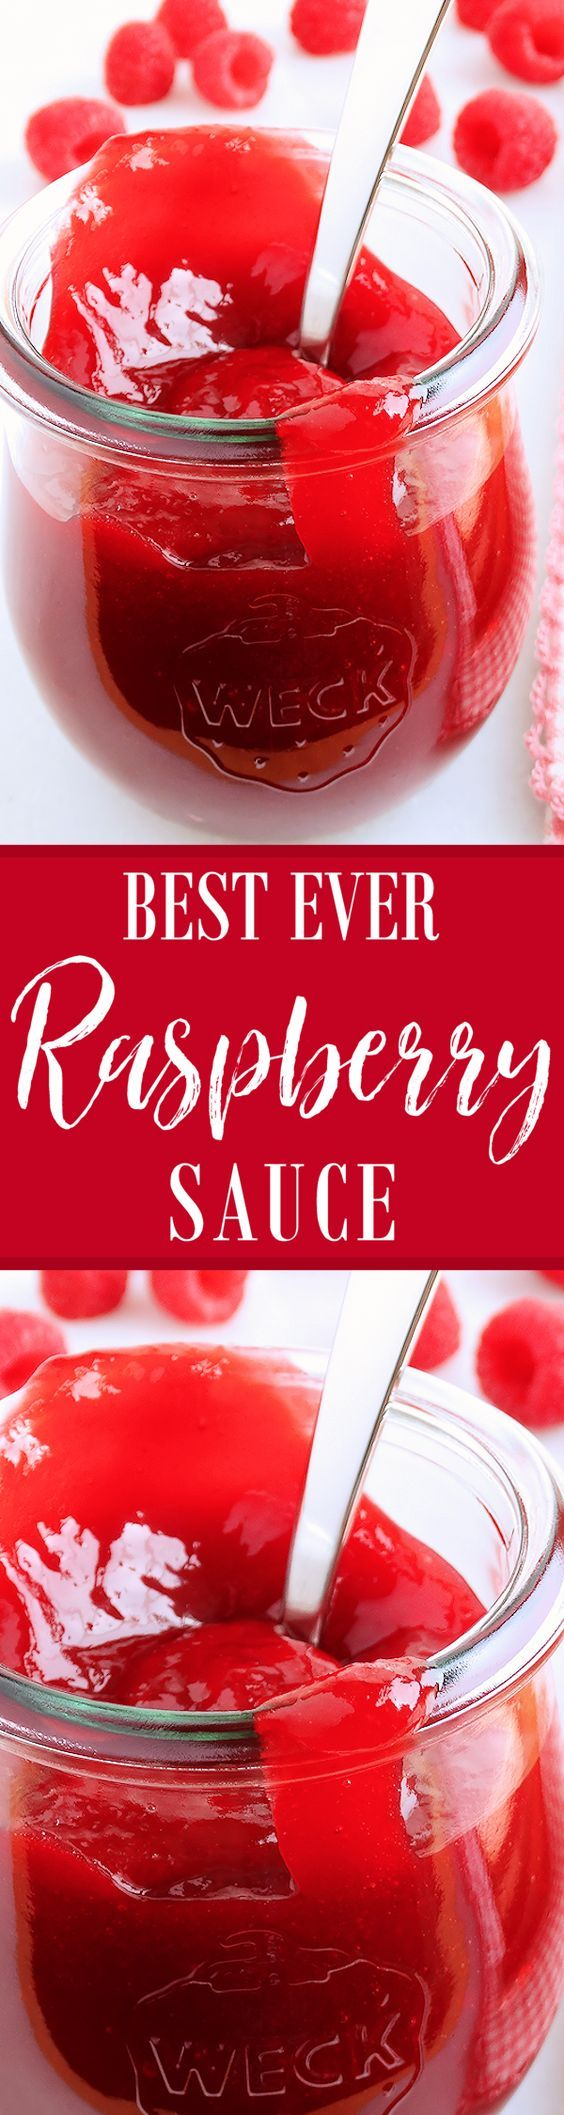 Raspberry Sauce (best ever) ~ Lush, thick, bright, jewel-like ruby-red in color, and bursting with fresh raspberry flavor, our Raspberry Sauce falls between a fresh cooked berry coulis and homemade jam yielding an incredibly gorgeous yet highly versatile dessert sauce—perfect for everyday, holiday and special occasion desserts. After prep, this recipe is ready in just 15 minutes!